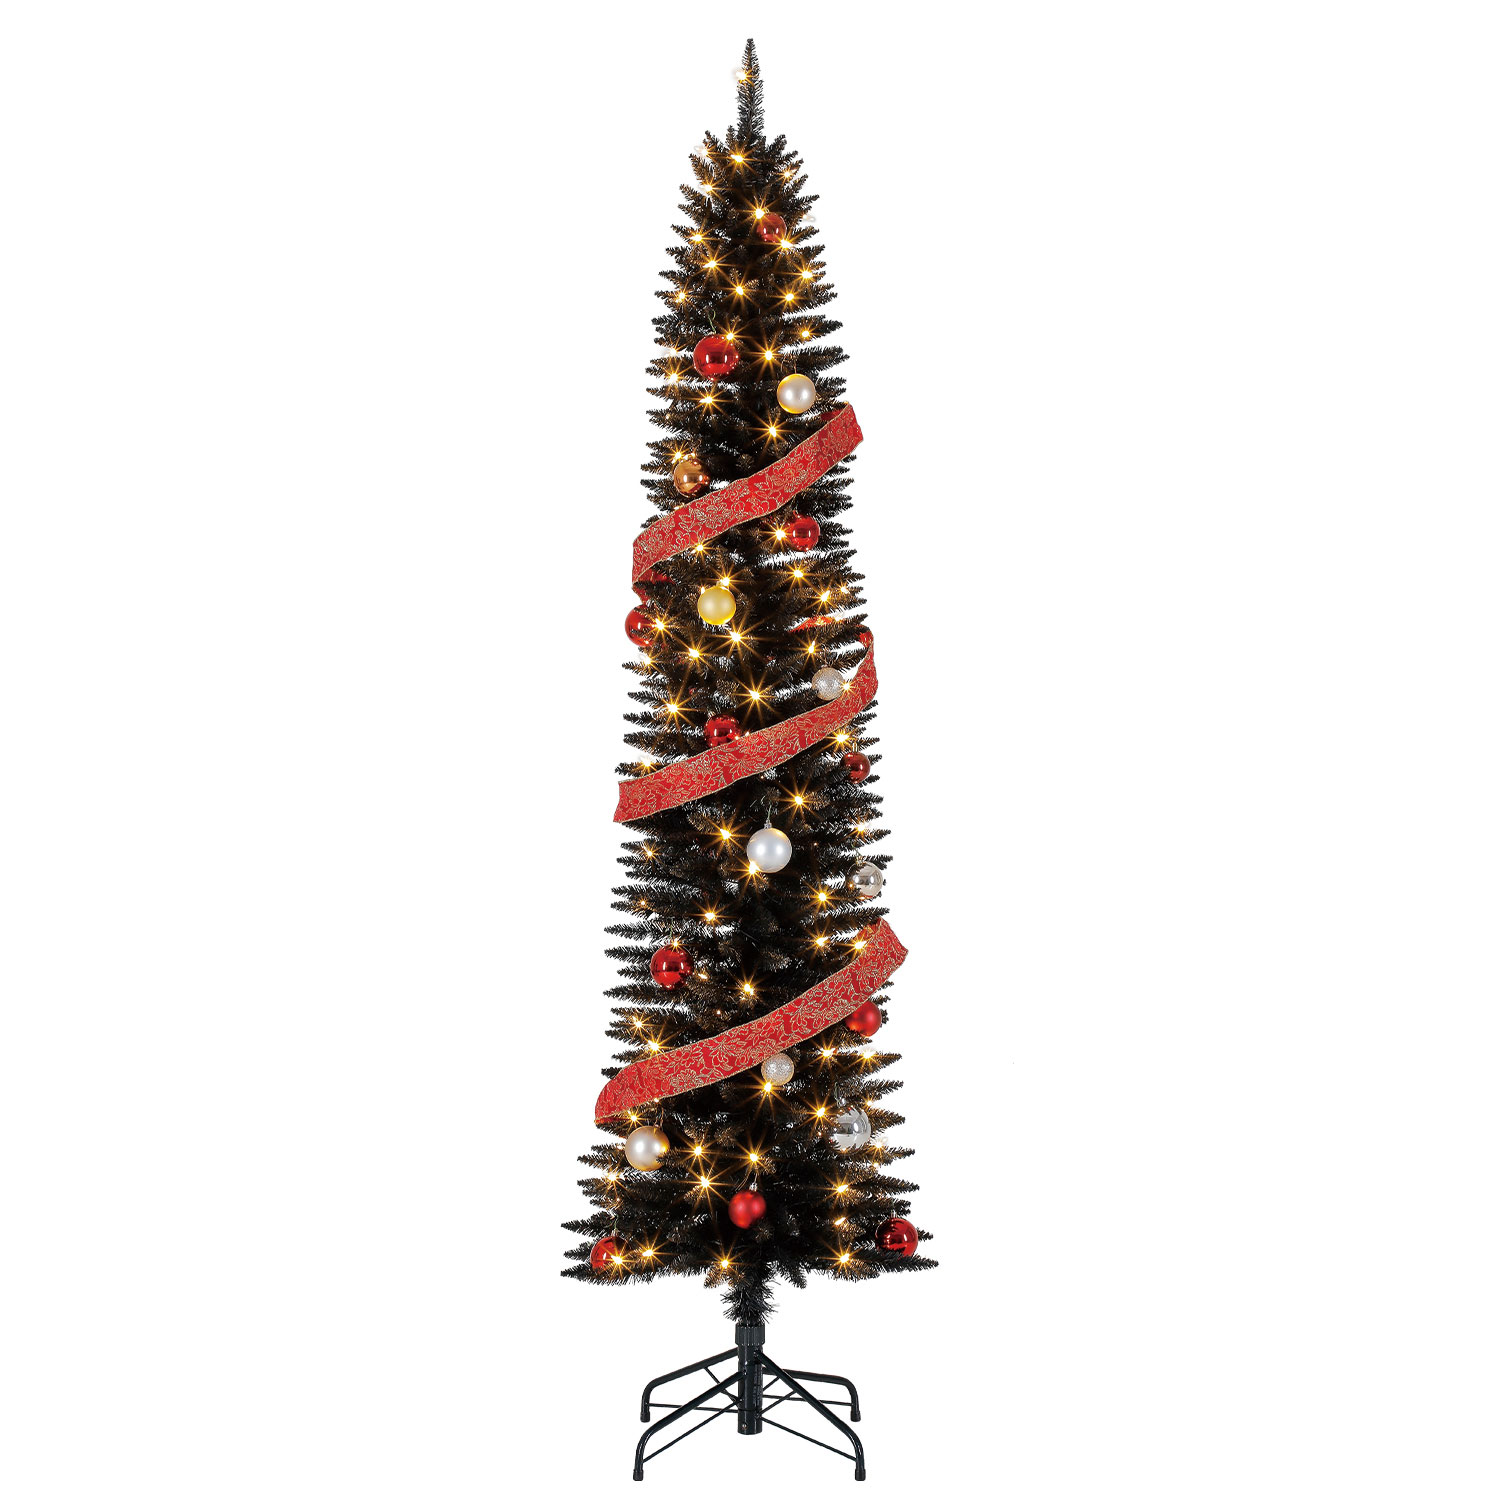 Home Heritage 7 Ft Pencil Artificial Tree with LED Lights ...